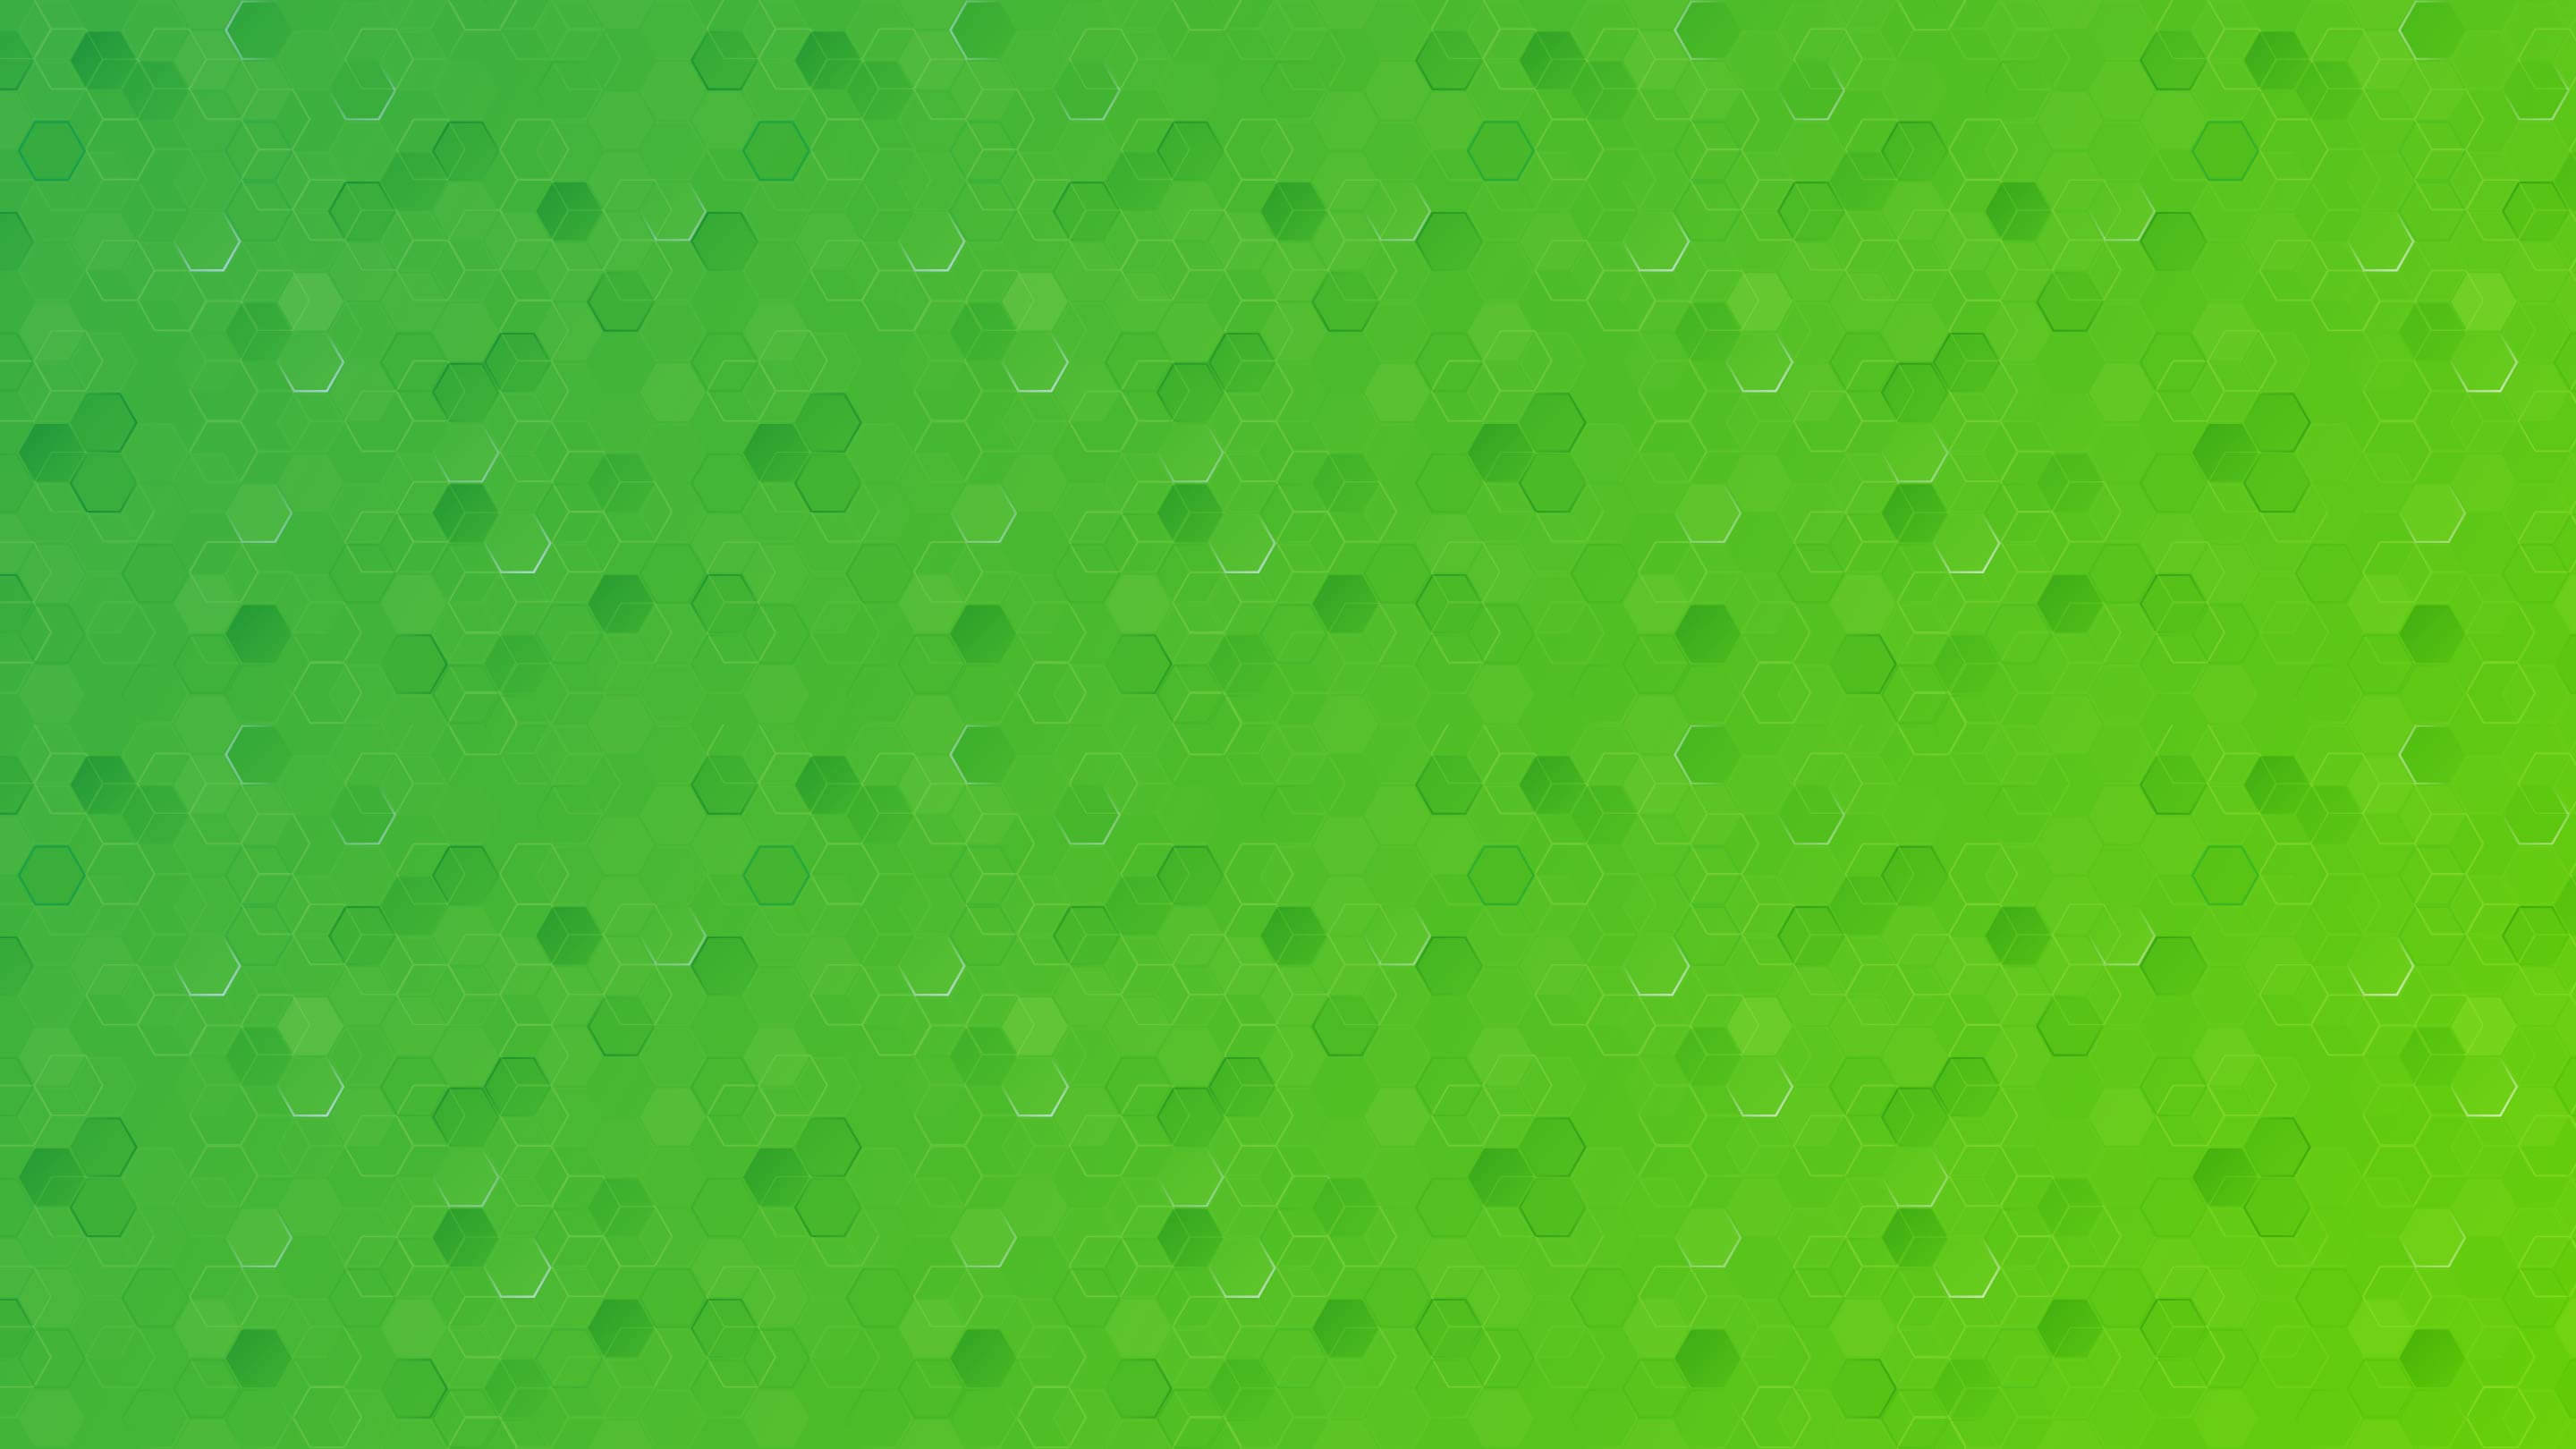 A green hexagon-patterned background.